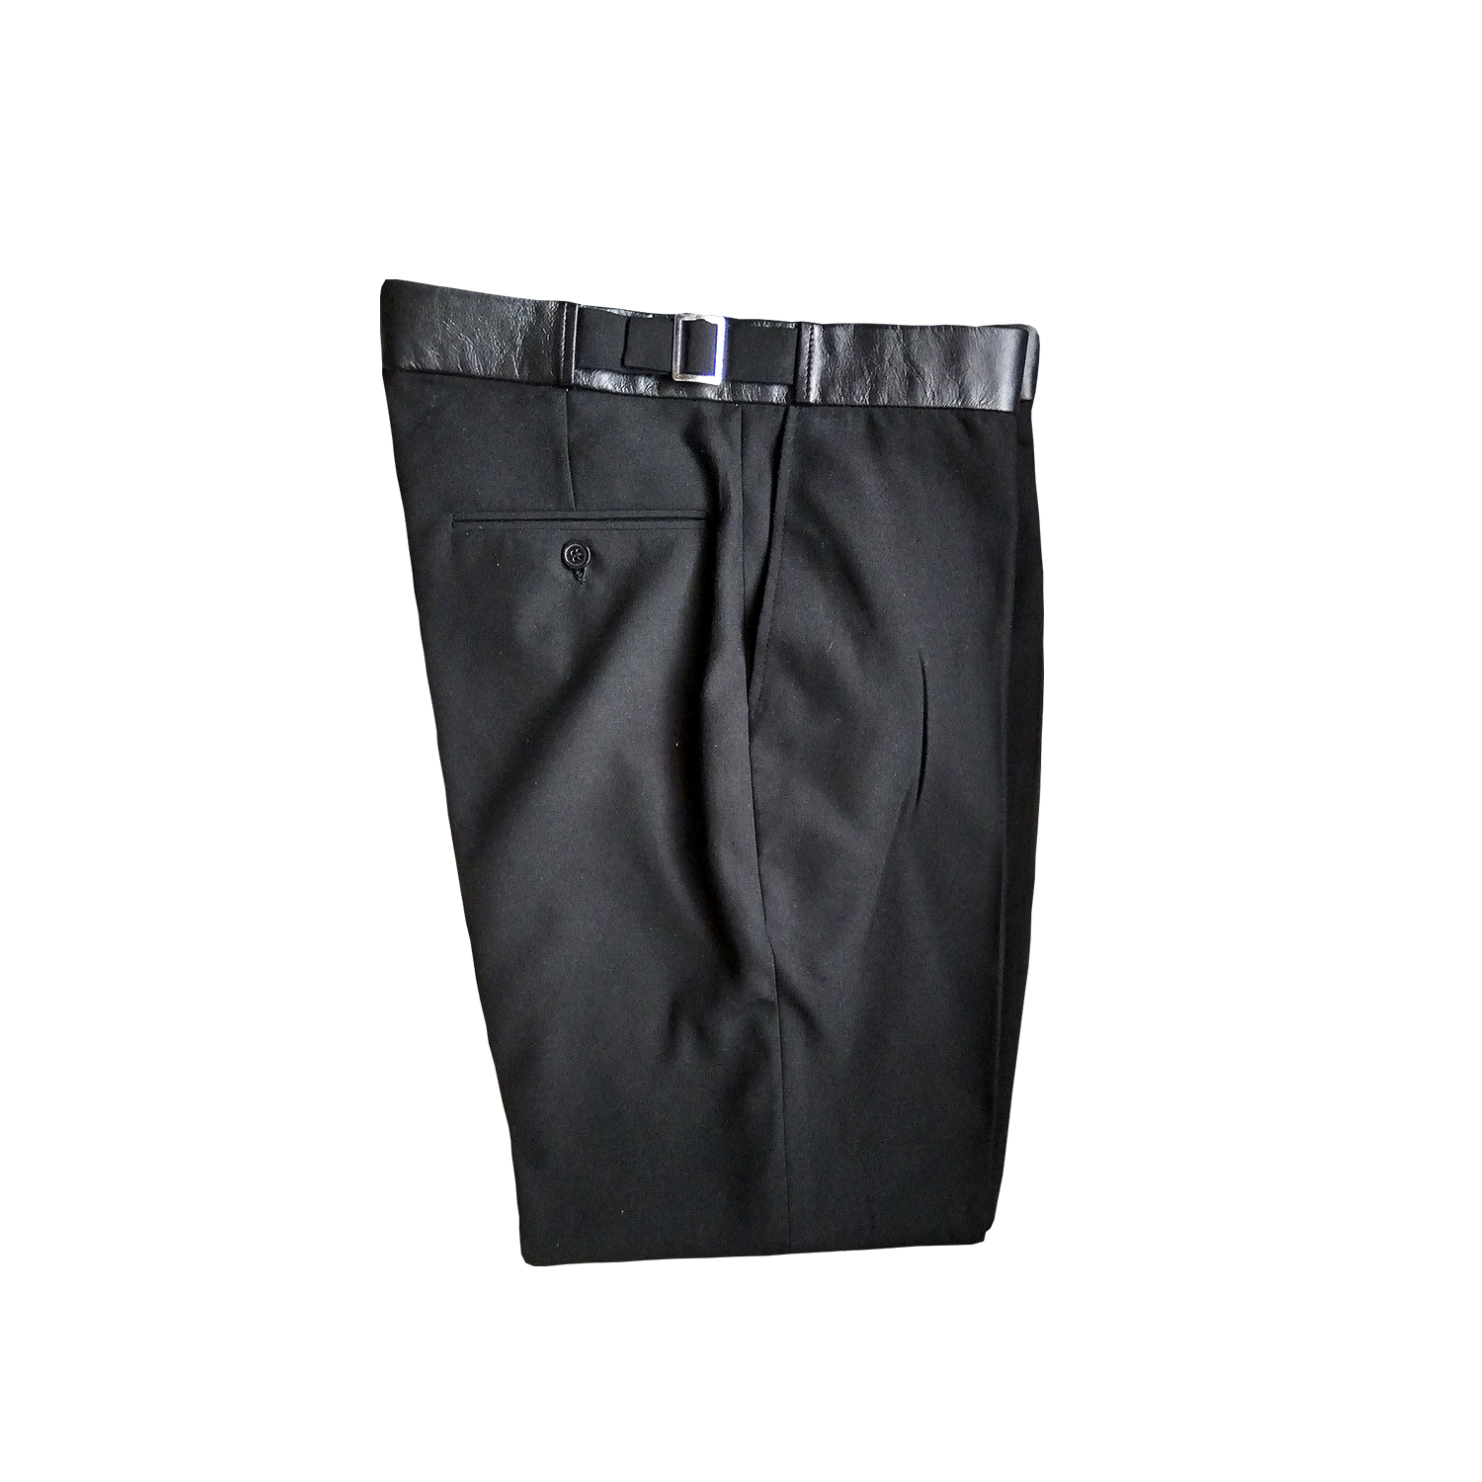 Best formal black pants for men in Nairobi Kenya